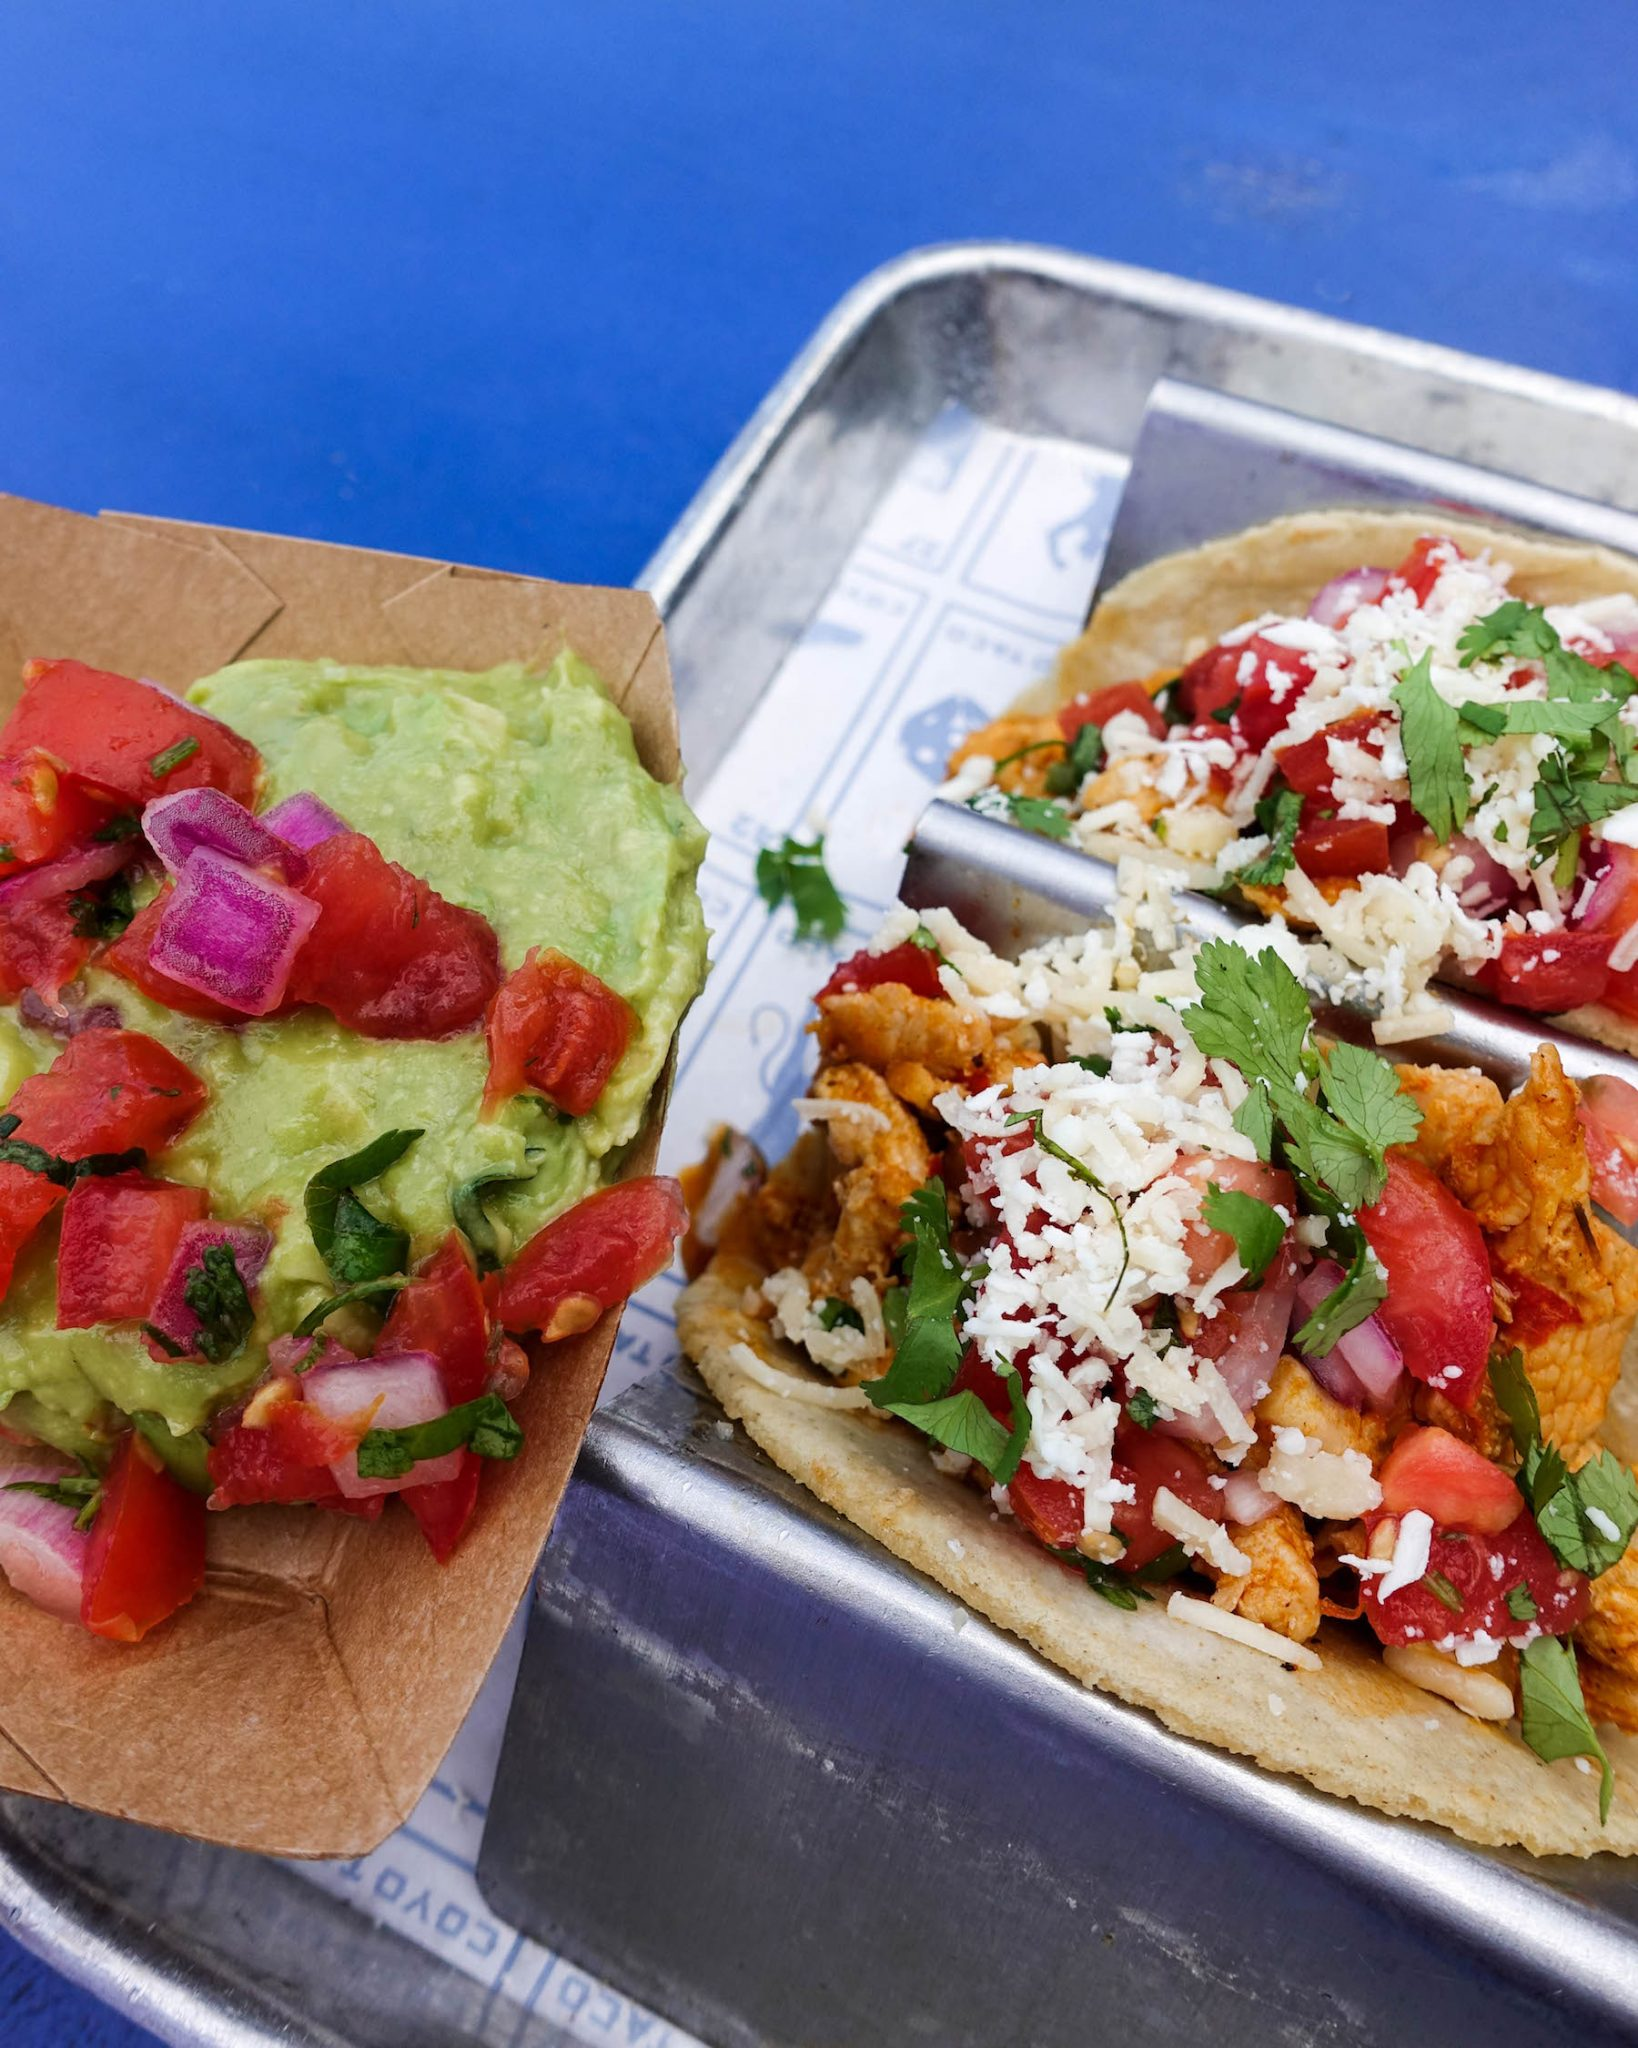 suelovesnyc_miami_glutenfrei_essen_in_miami_coyo_taco_wynwood Coyo taco